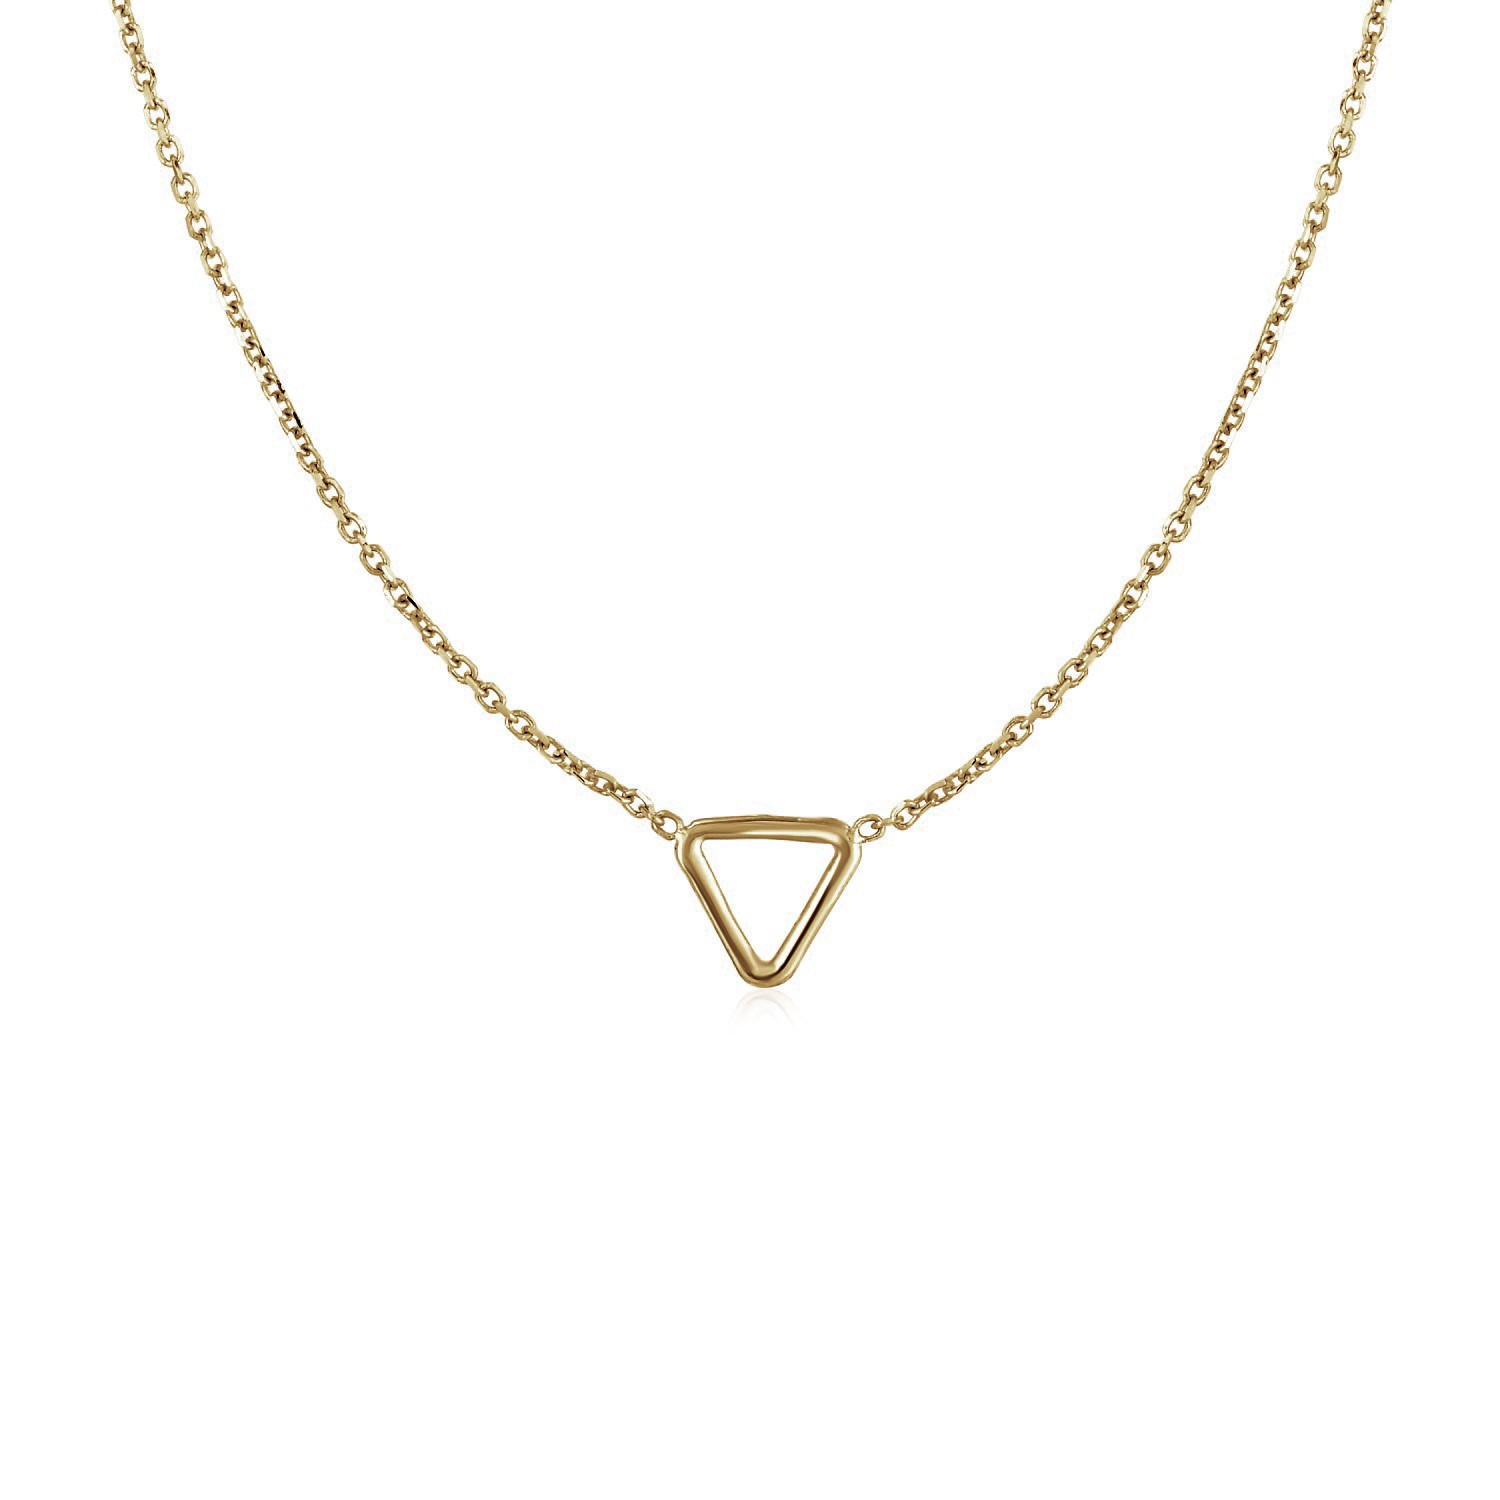 6b20907a74de3 14k Yellow Gold Necklace with Petite Open Triangle Pendant - Richard ...